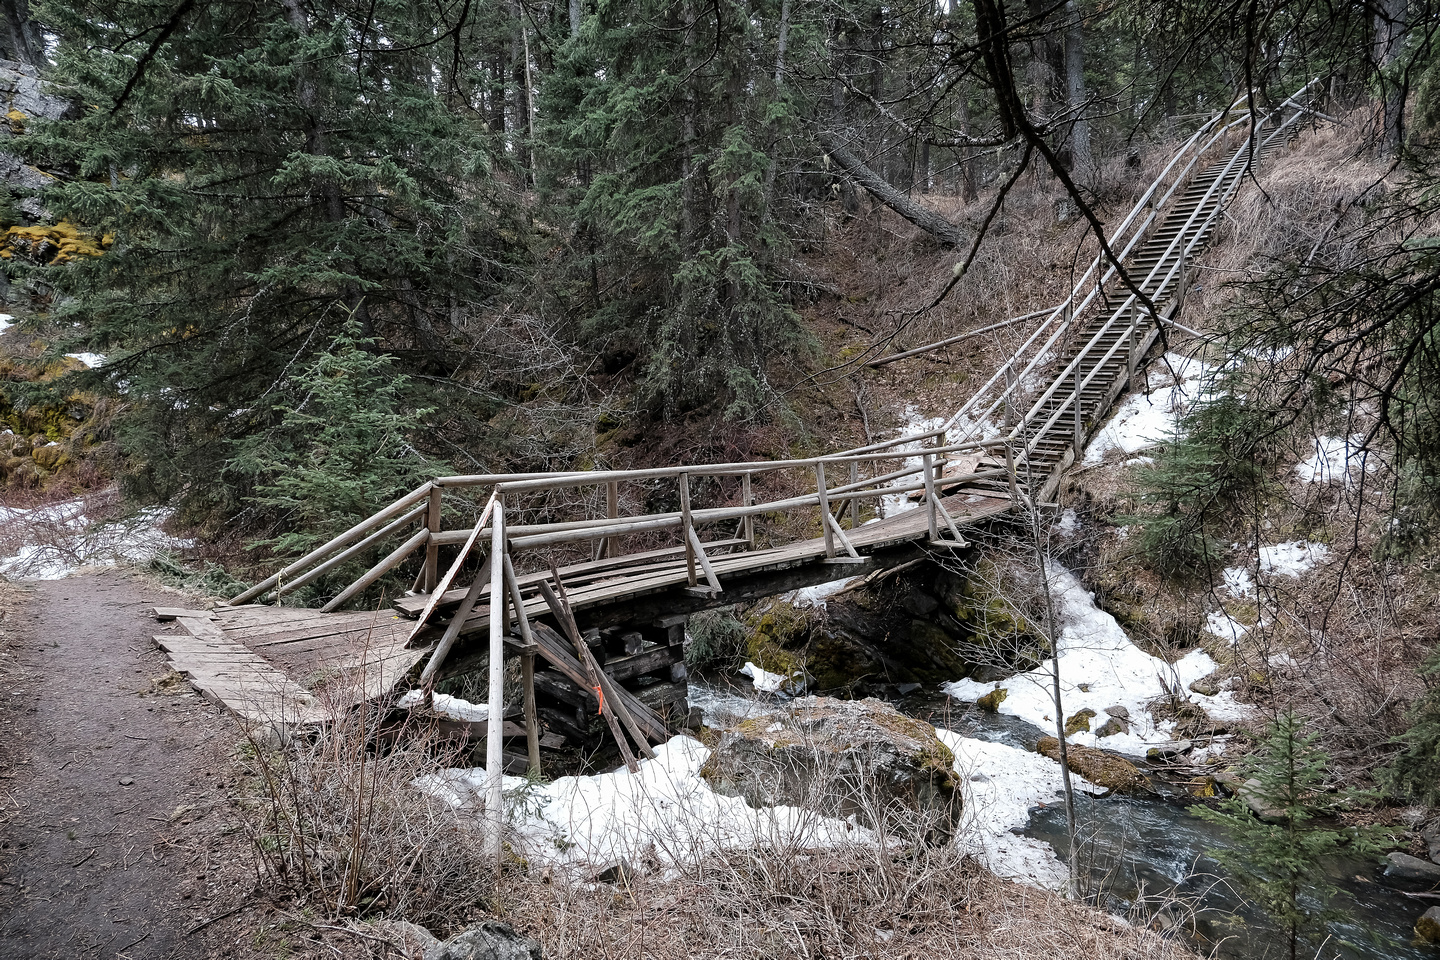 This bridge goes to the old mining site and is falling apart.